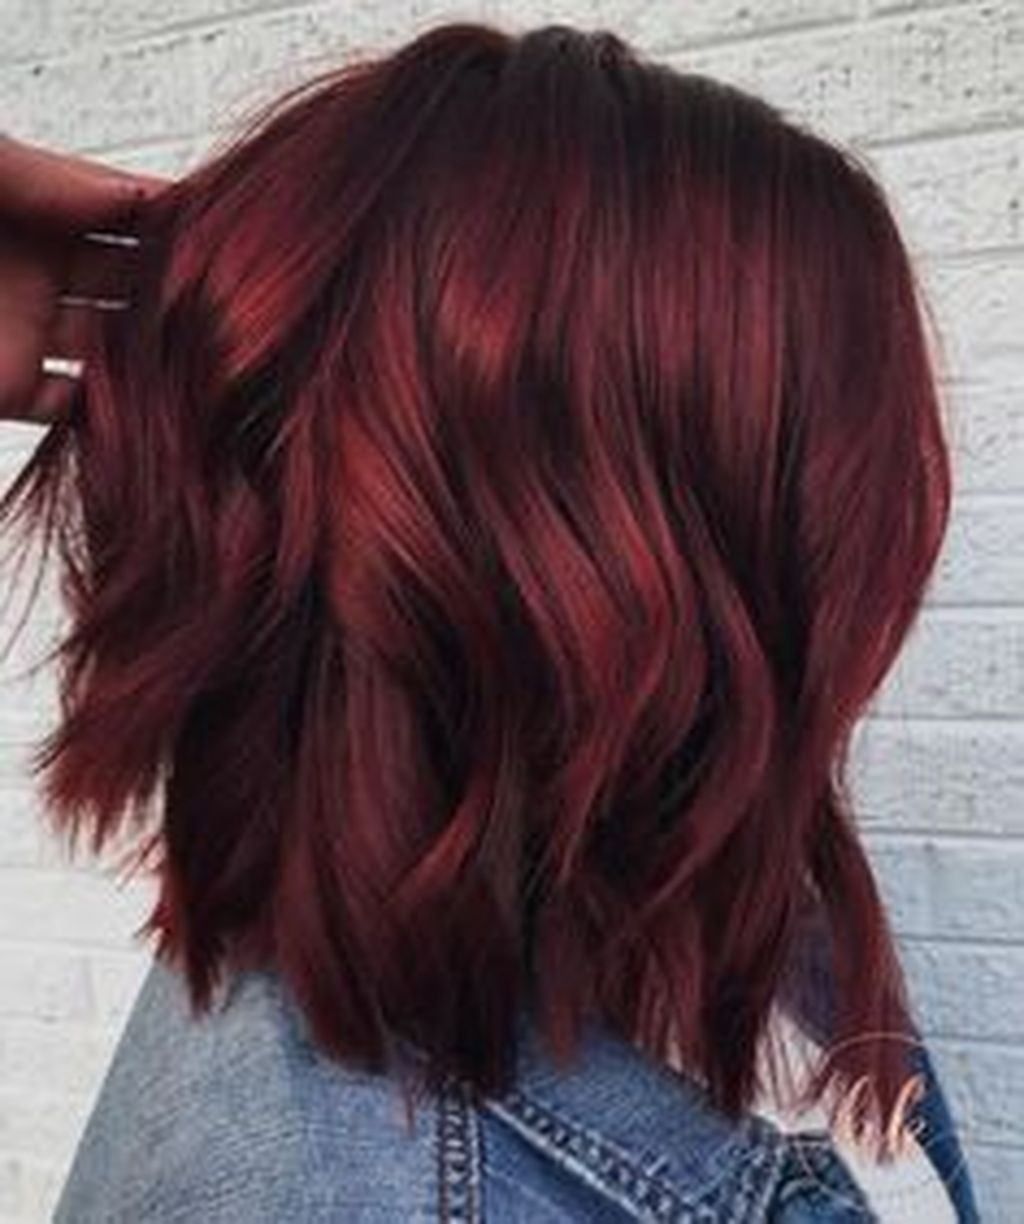 49 Classy Hair Color Ideas To Try In 2019 Short Red Hair Wine Hair Red Balayage Hair